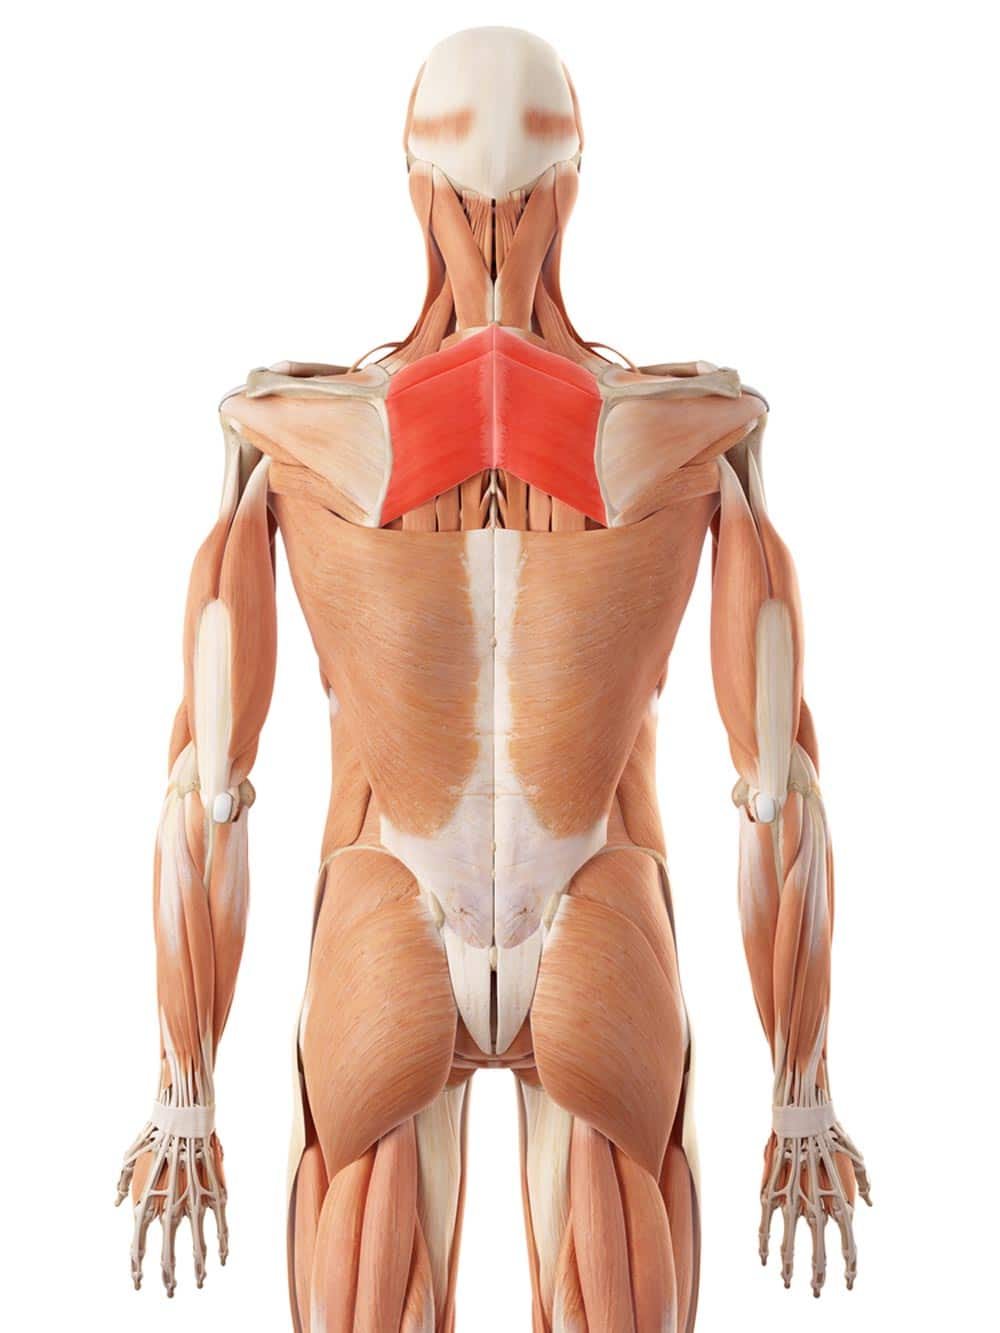 Rounded shoulders are often caused by weak rhomboids